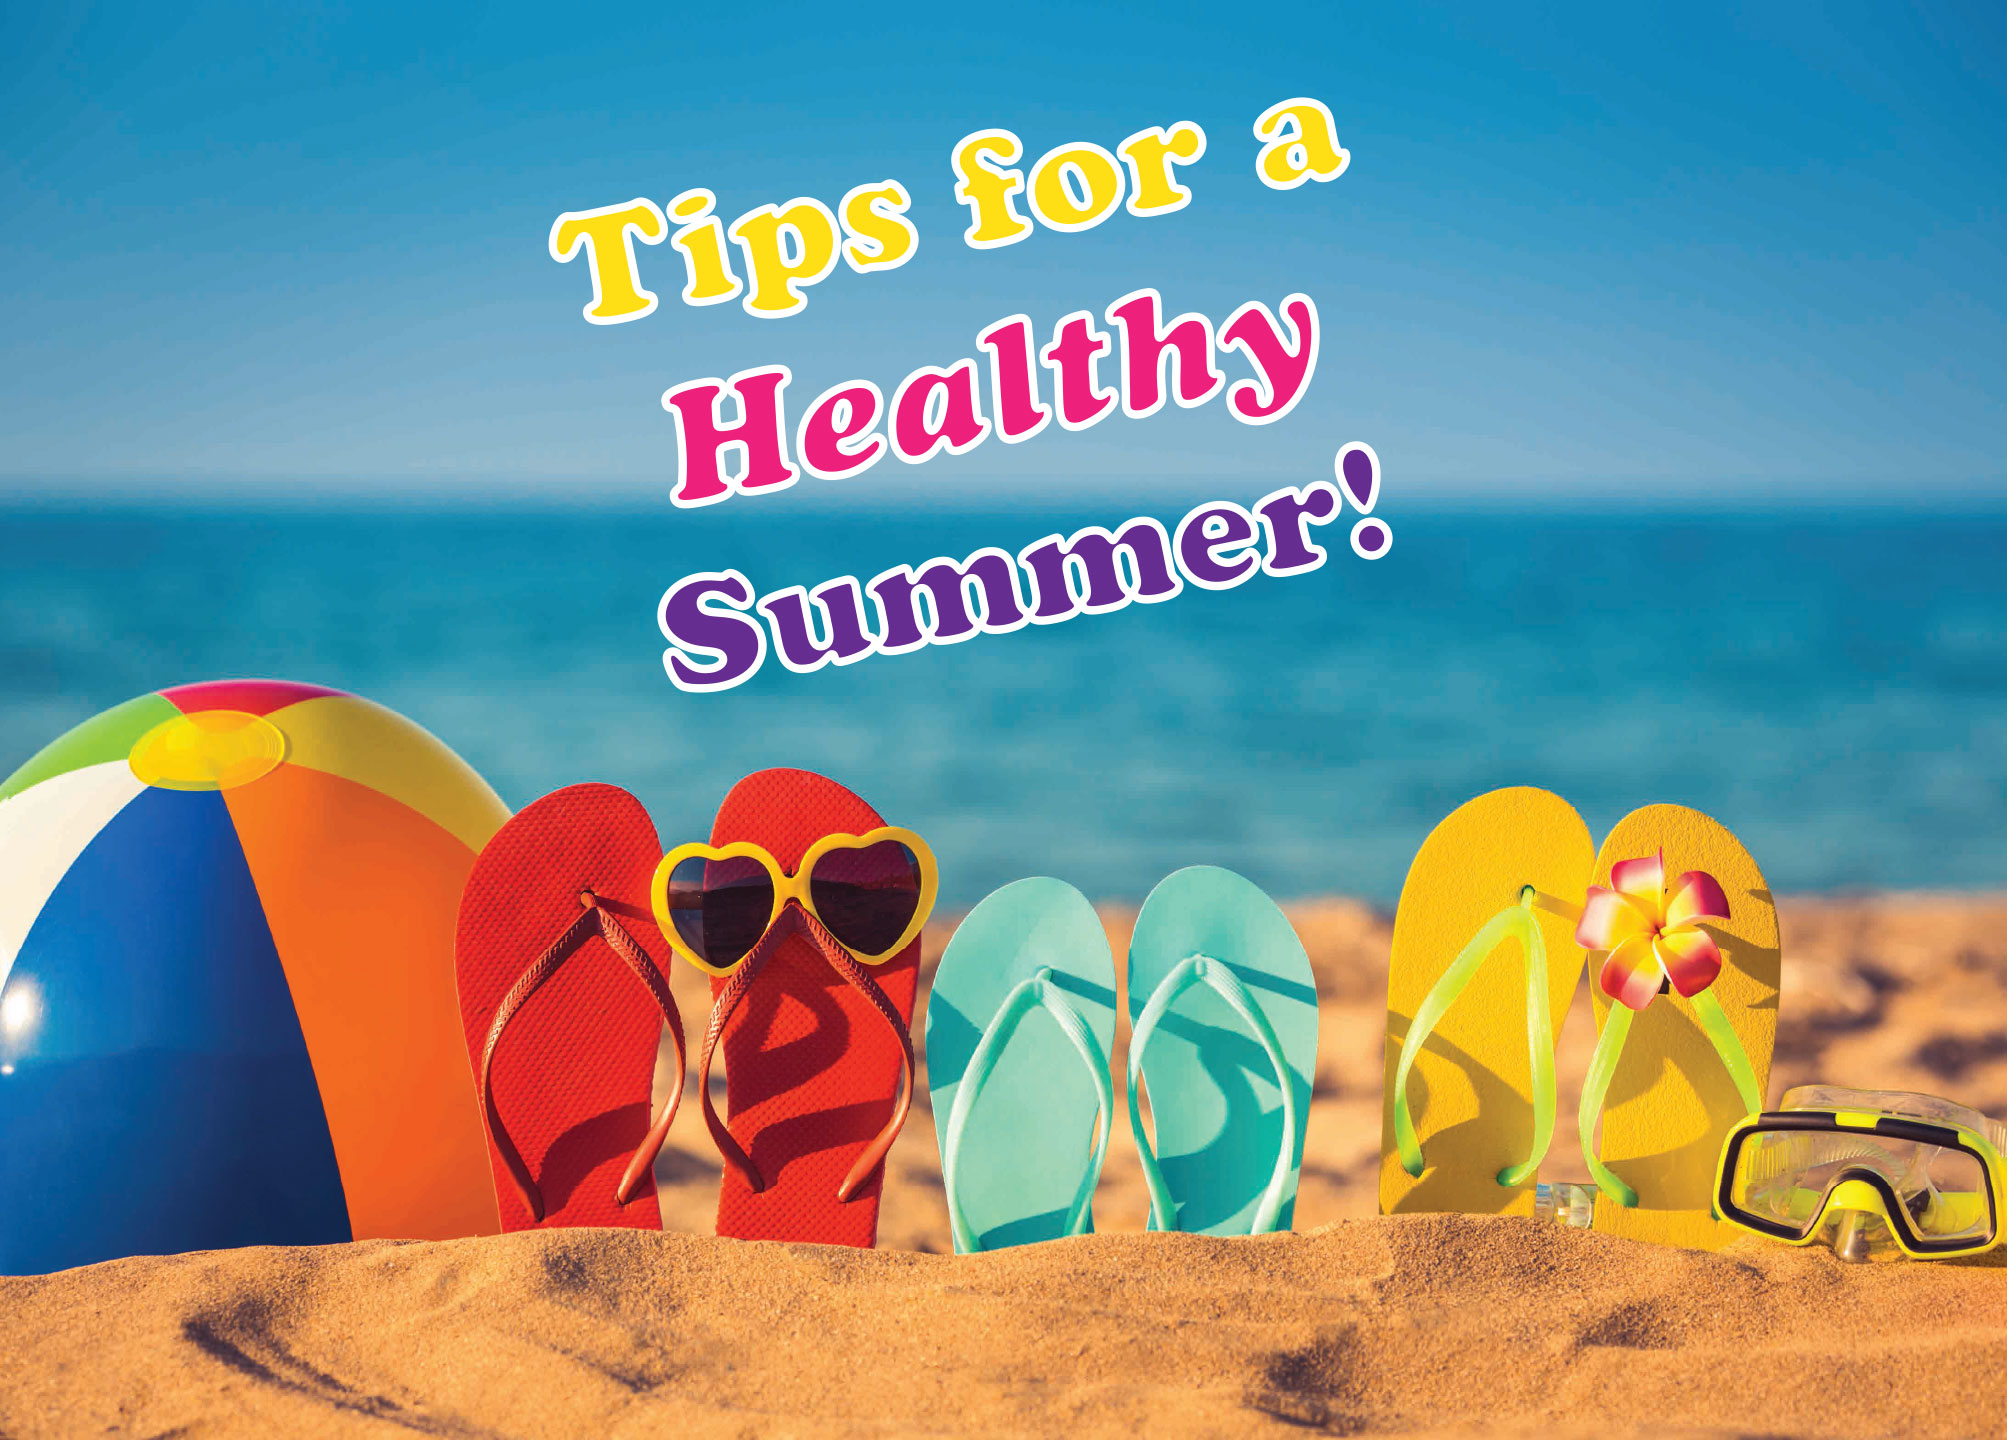 Endo Tips for a healthy Summer        Arizona Chapter Endo Tips for a healthy Summer